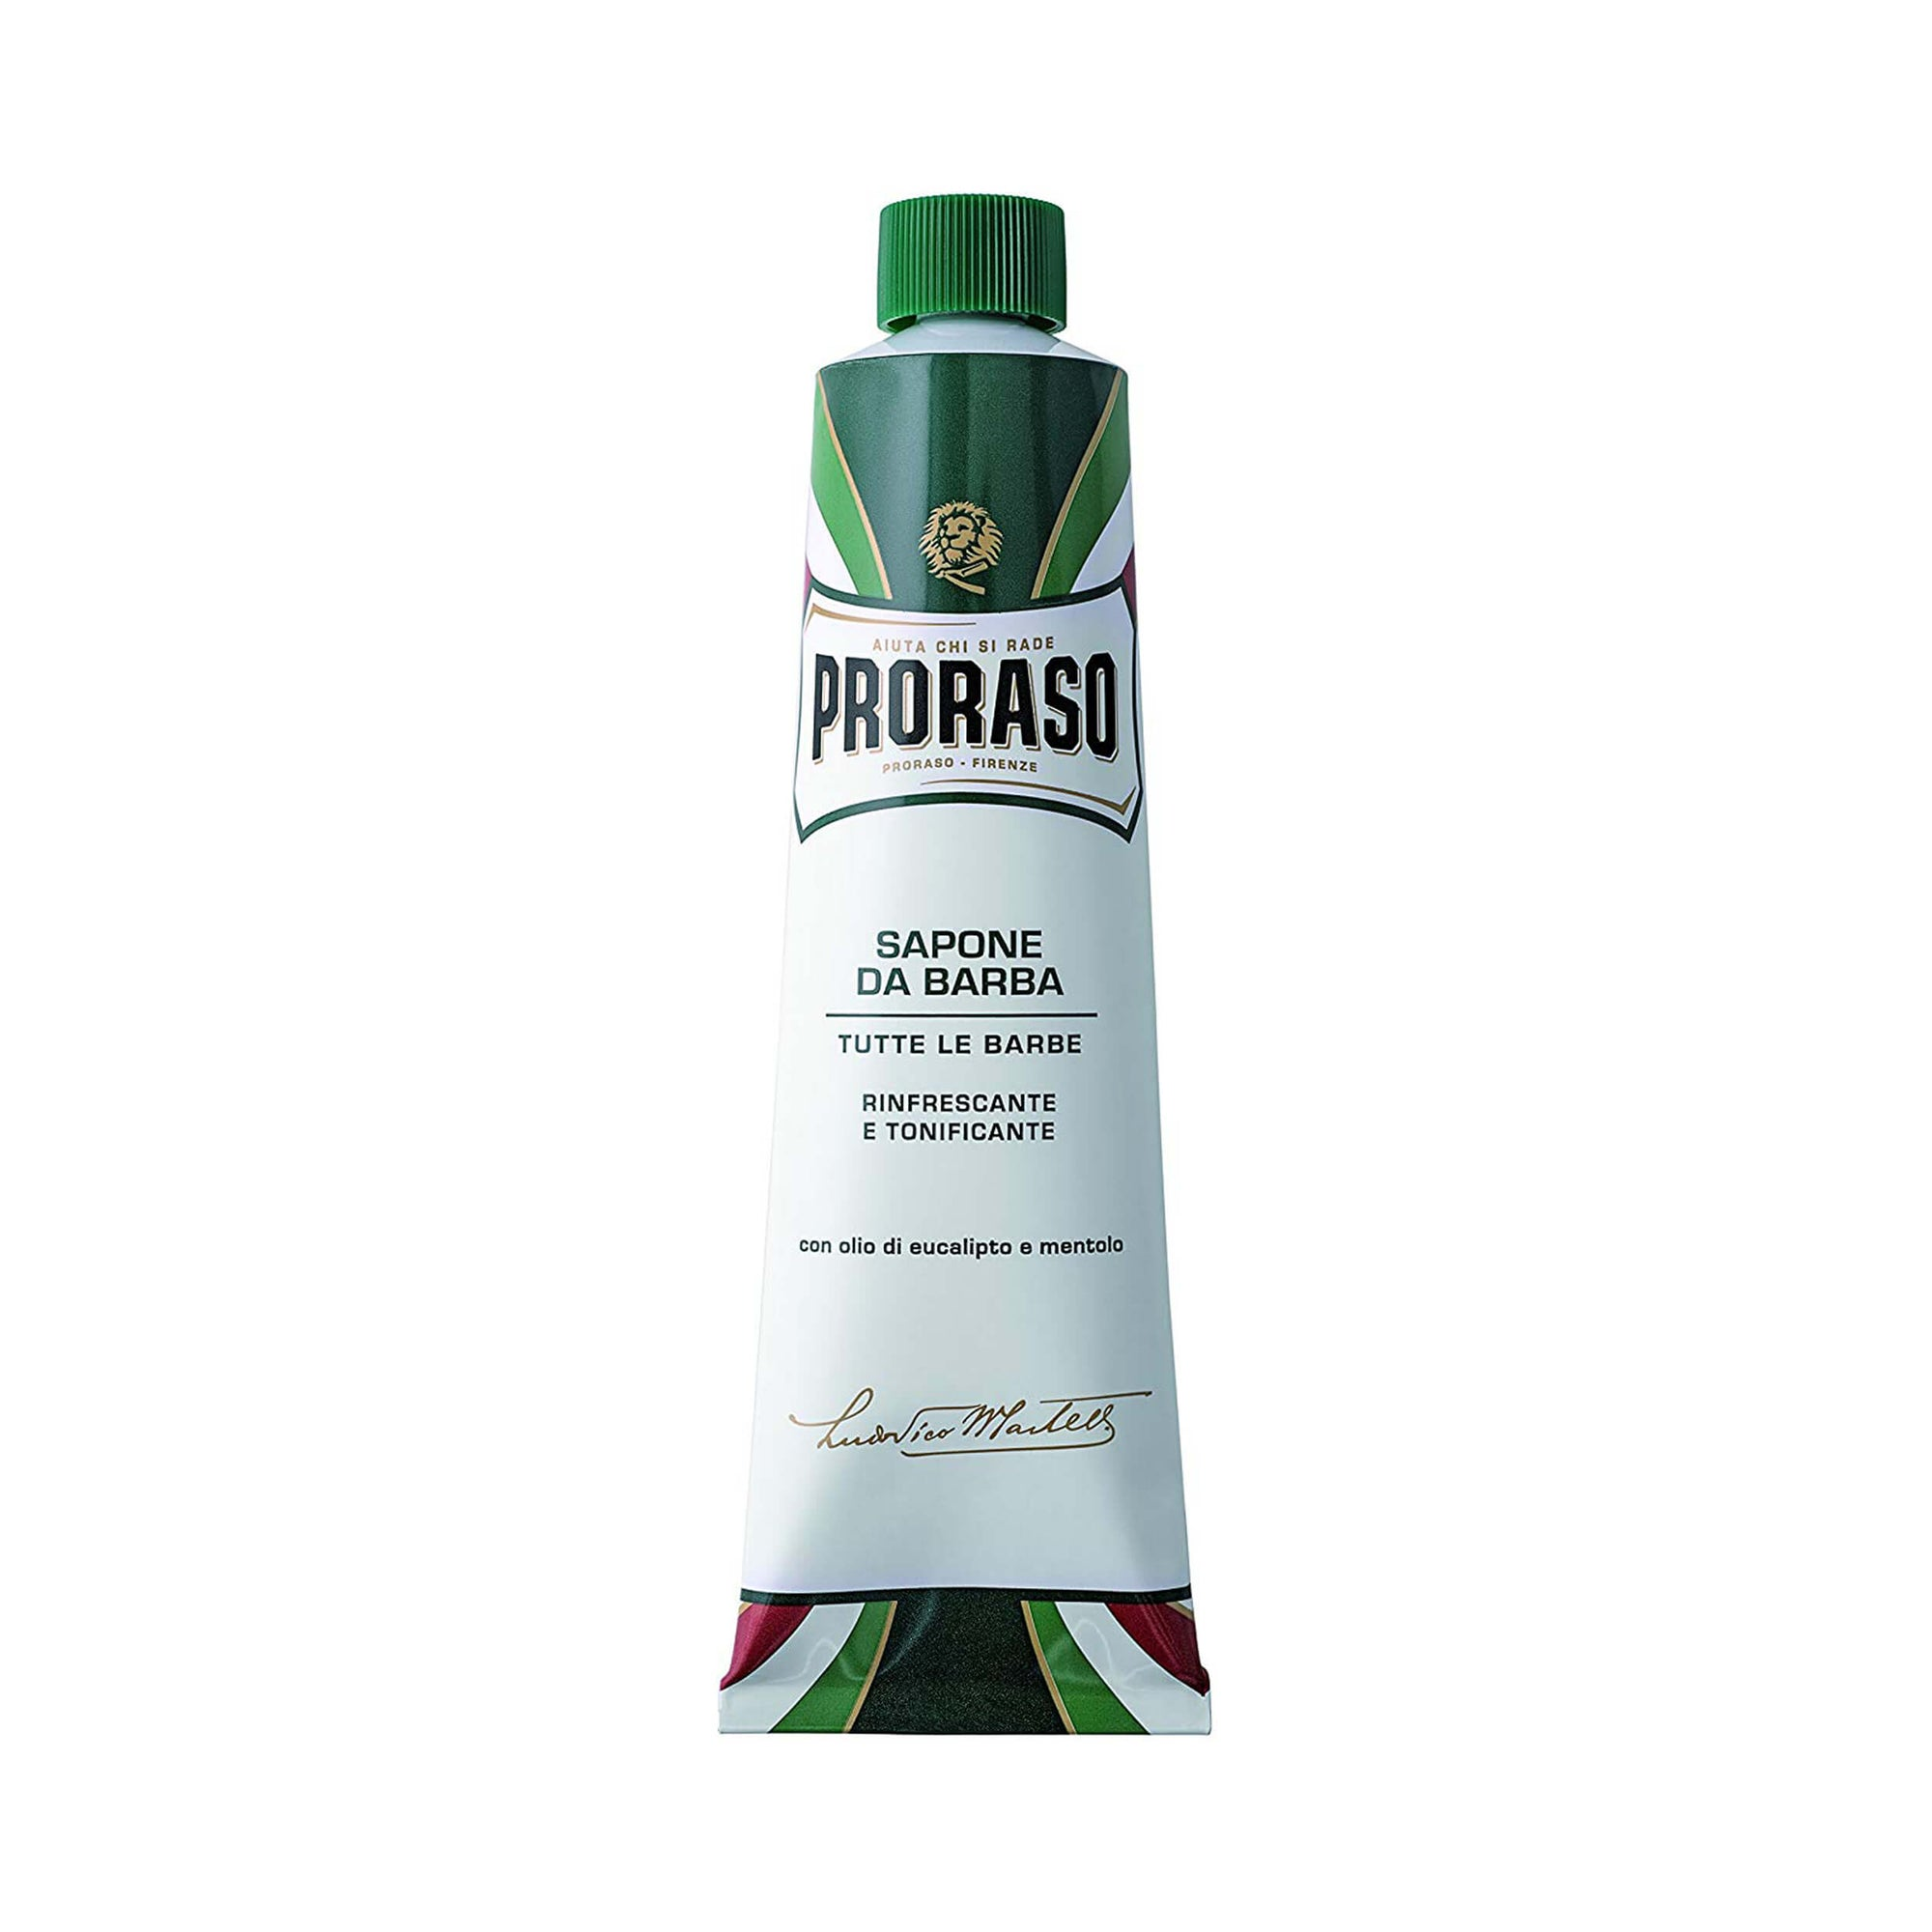 Proraso Shaving Cream Refreshing and Toning 150 mL